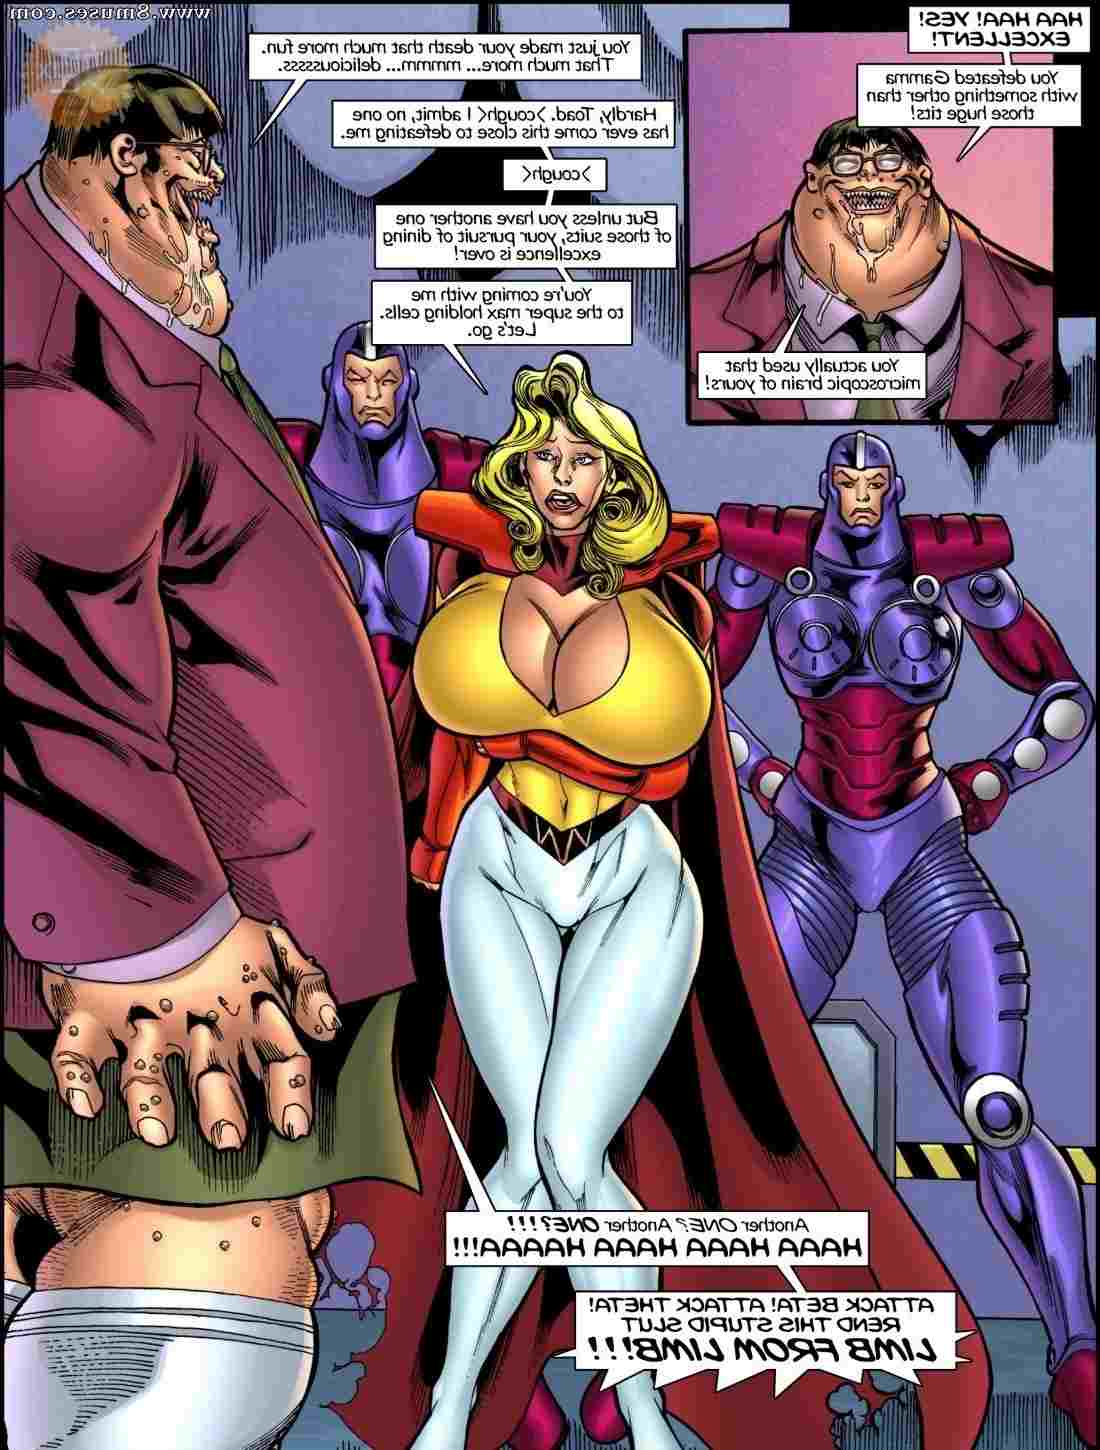 SuperHeroineComixxx/Mighty-cow Mighty_cow__8muses_-_Sex_and_Porn_Comics_40.jpg